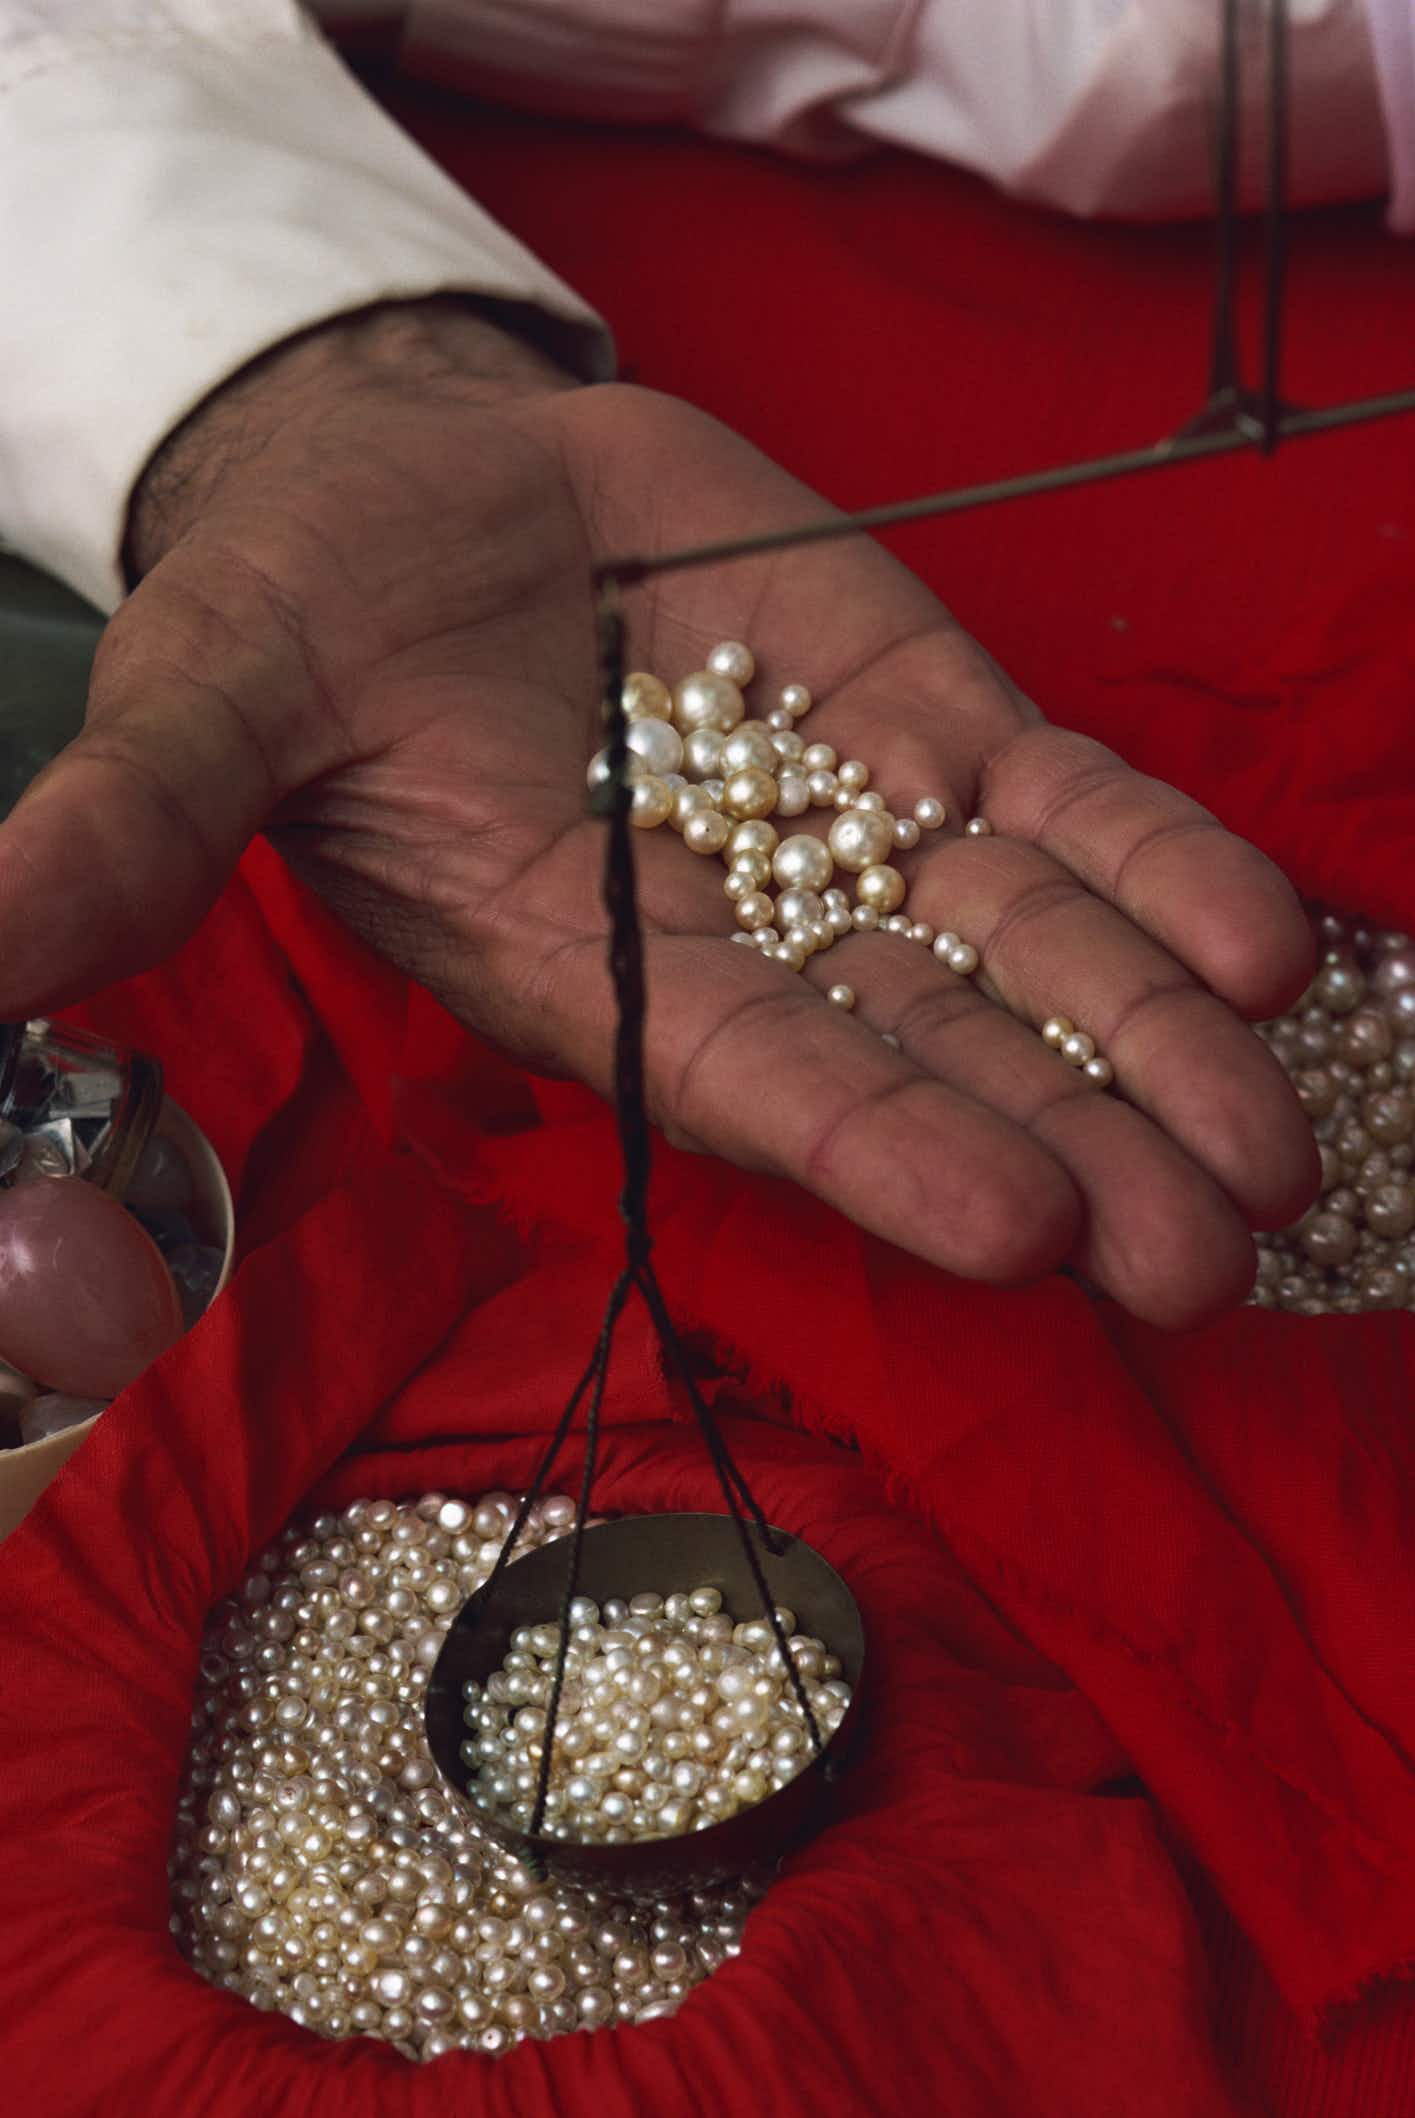 Go pearl-diving in Bahrain and take your treasure home with you